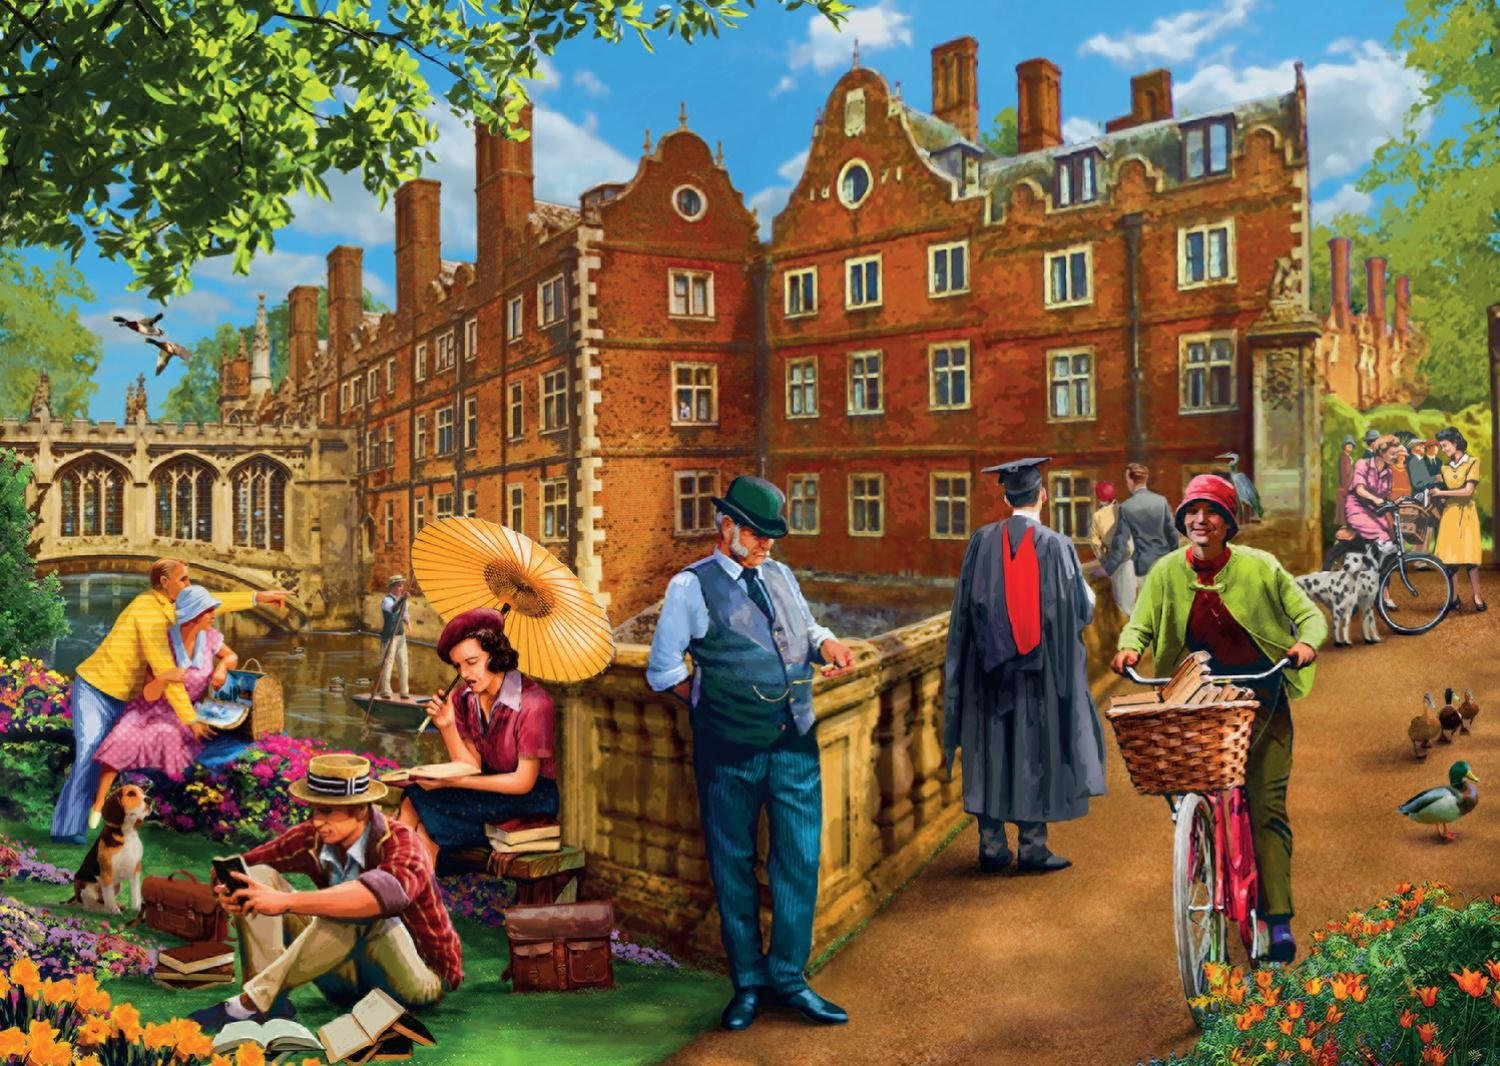 mat-edwards-an-afternoon-in-cambridge